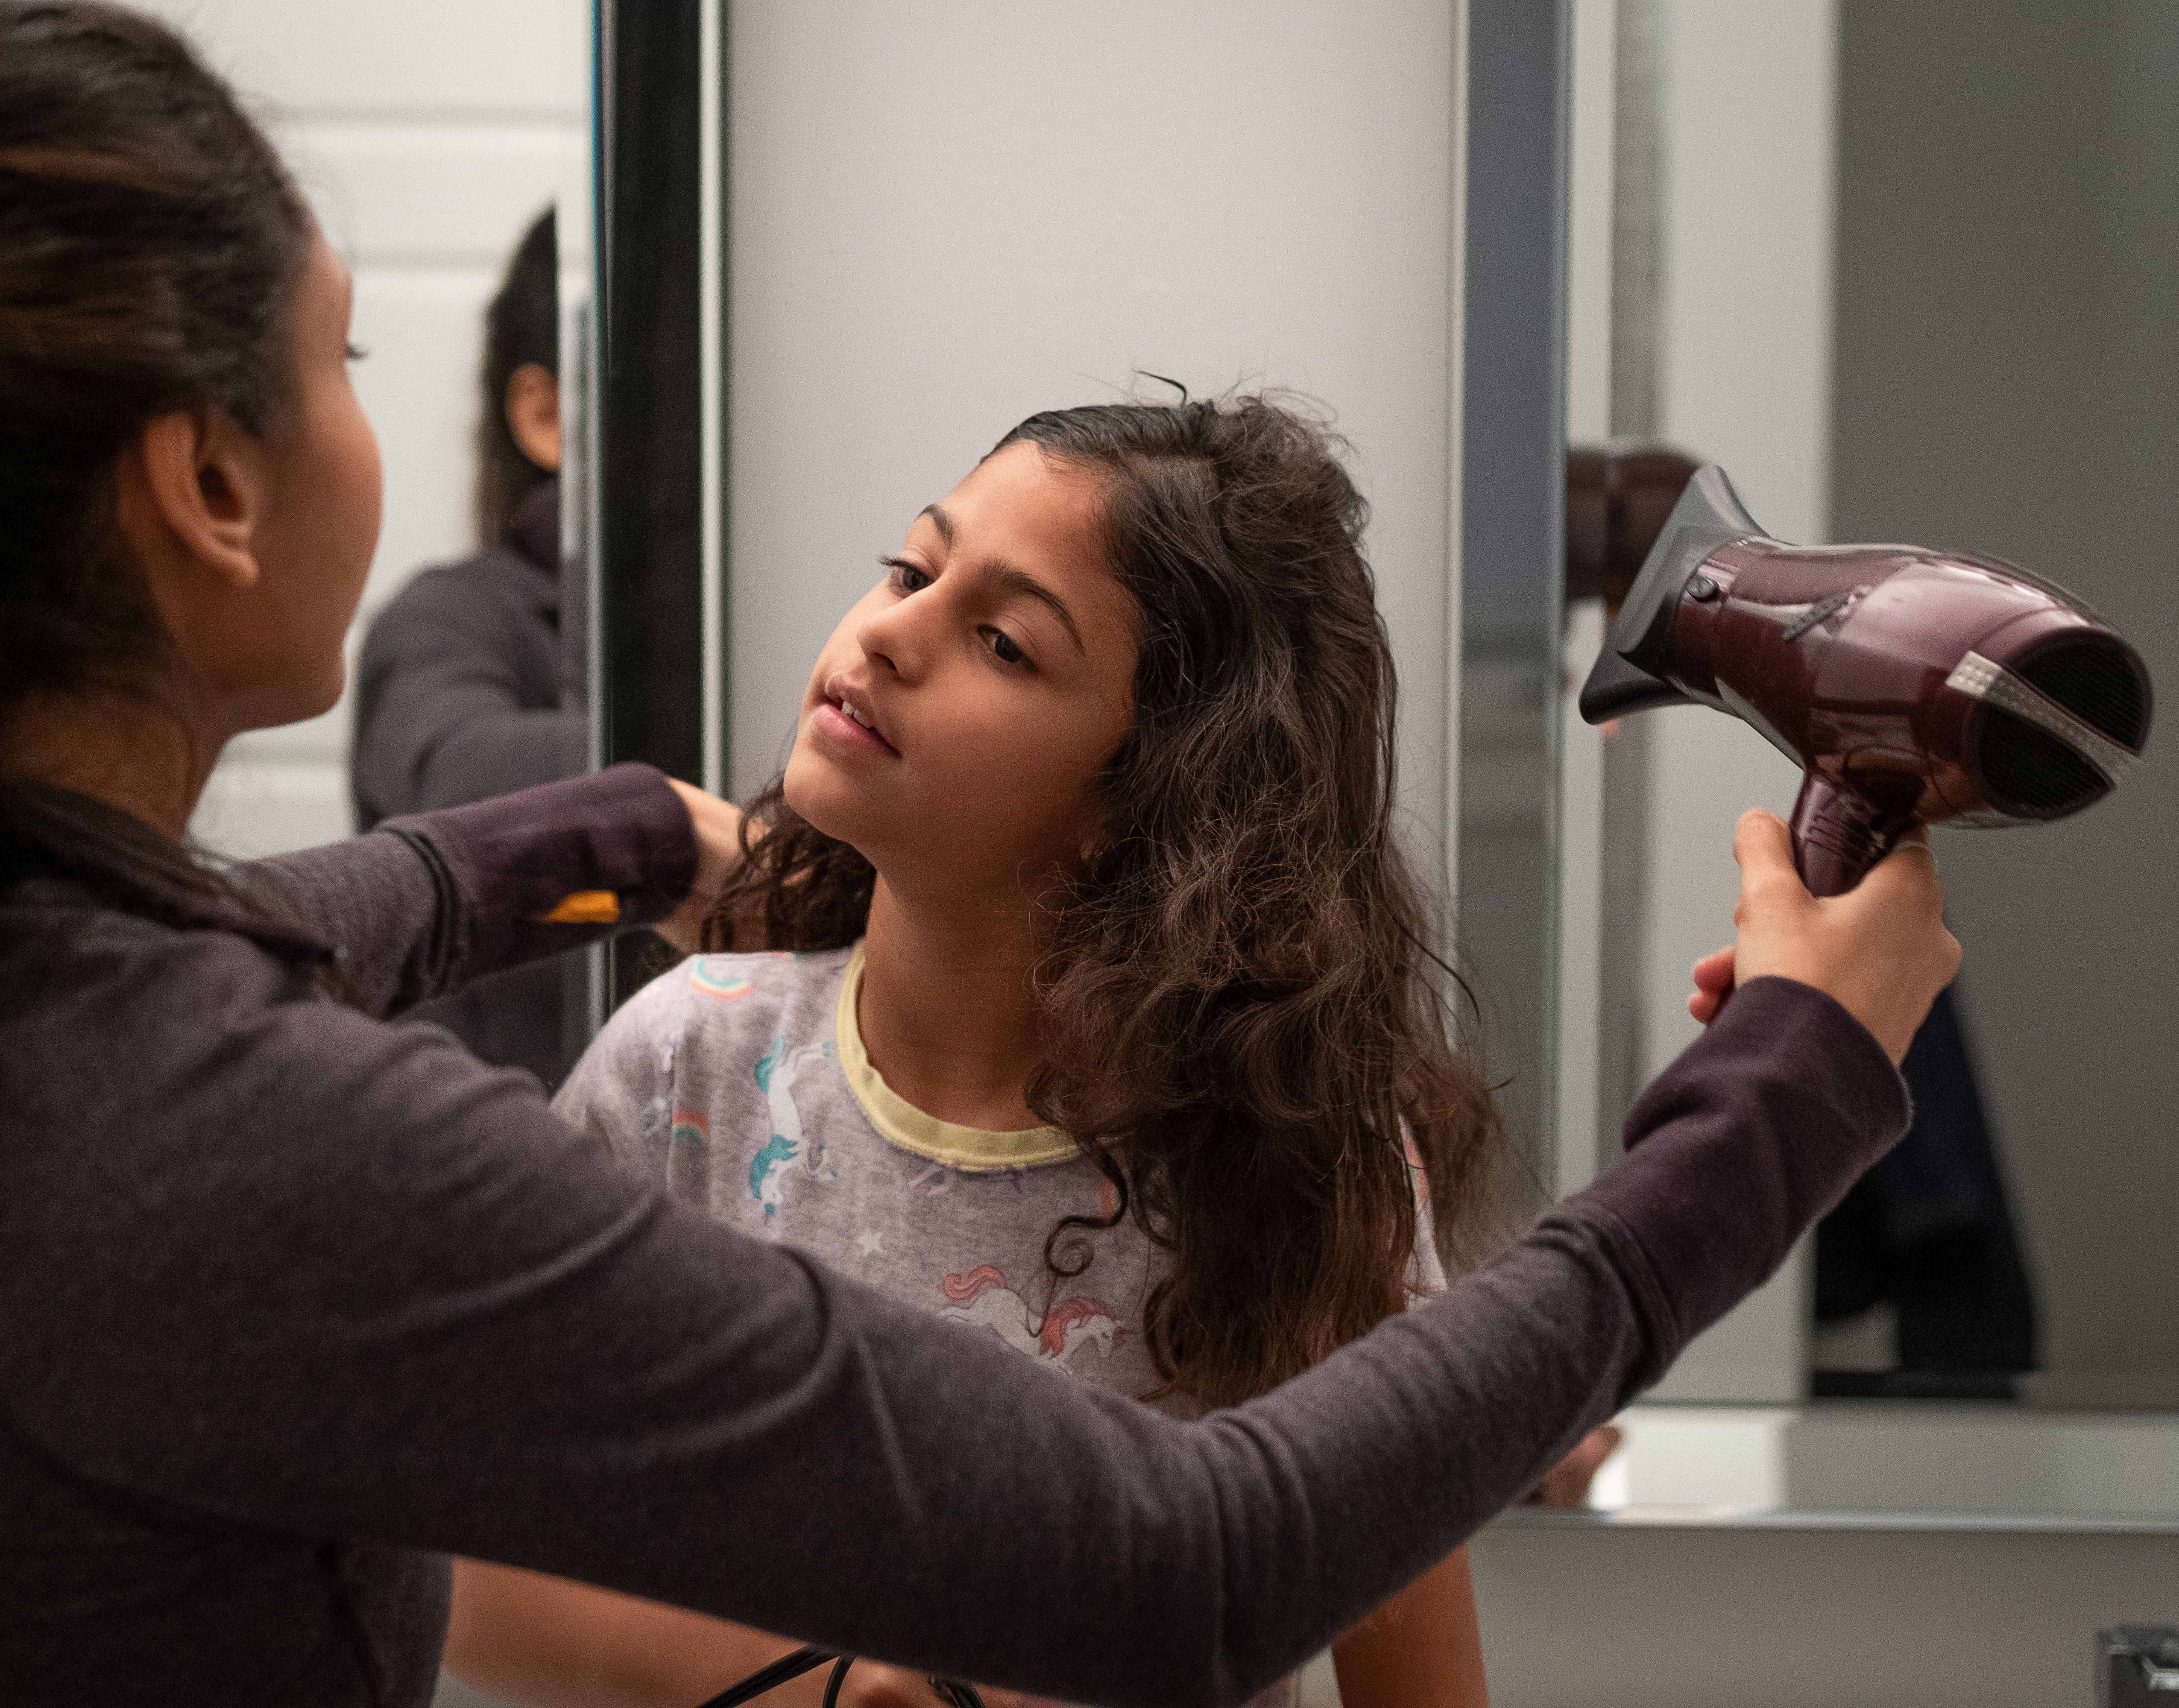 A girl getting her hair dryed